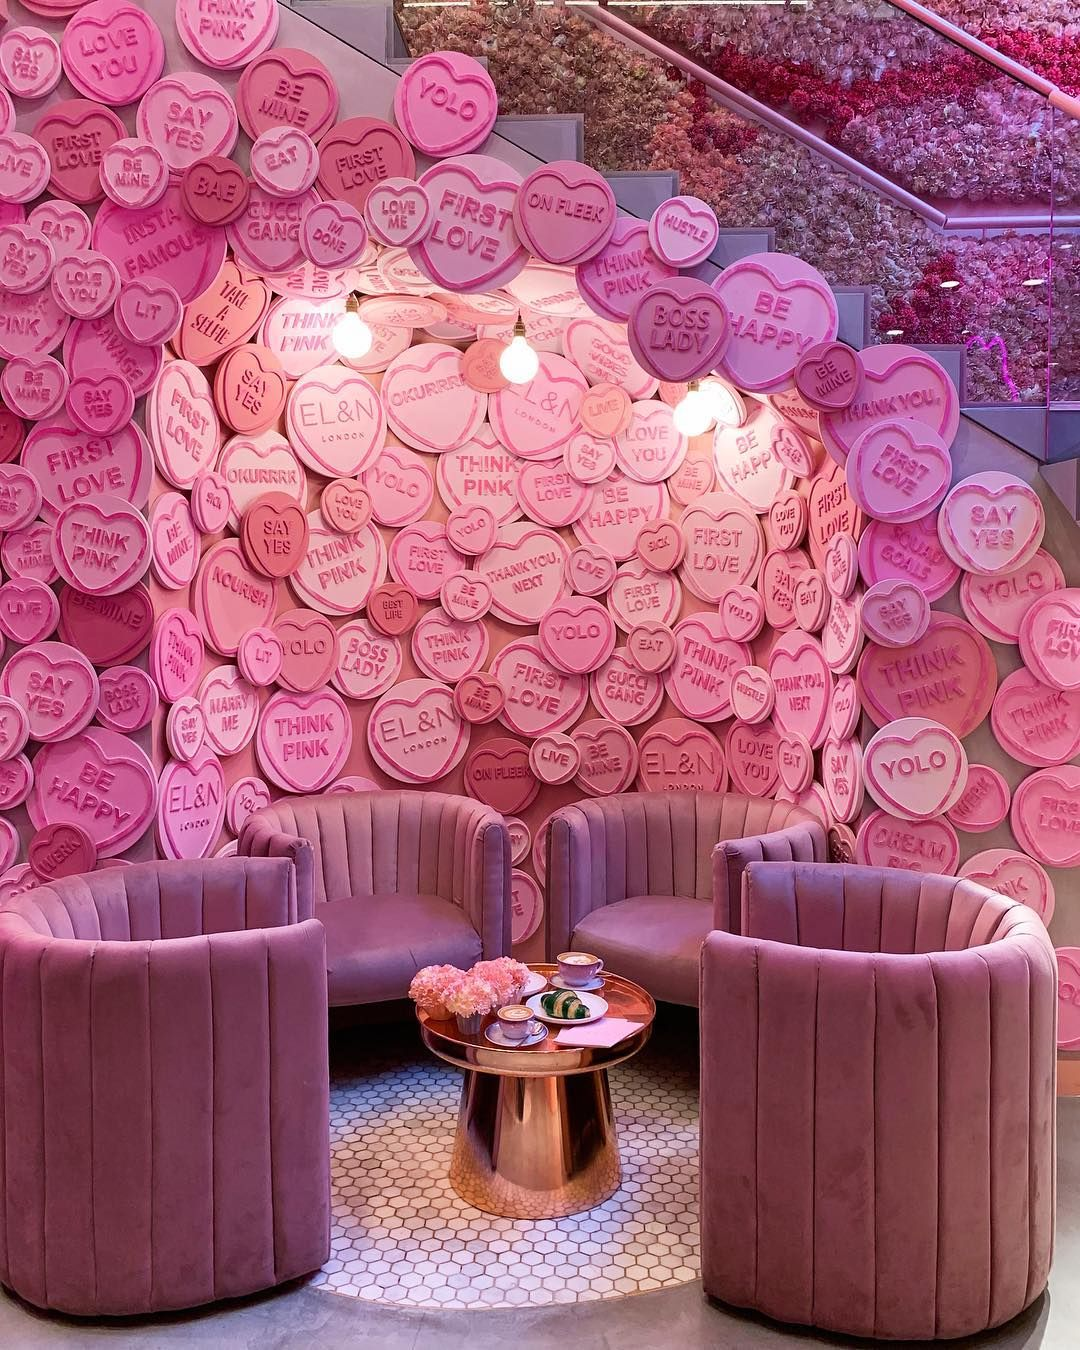 Habitually Chic Valentine S Day Gift Guide For 2019 In 2020 Pink Cafe Beauty Salon Decor Pink